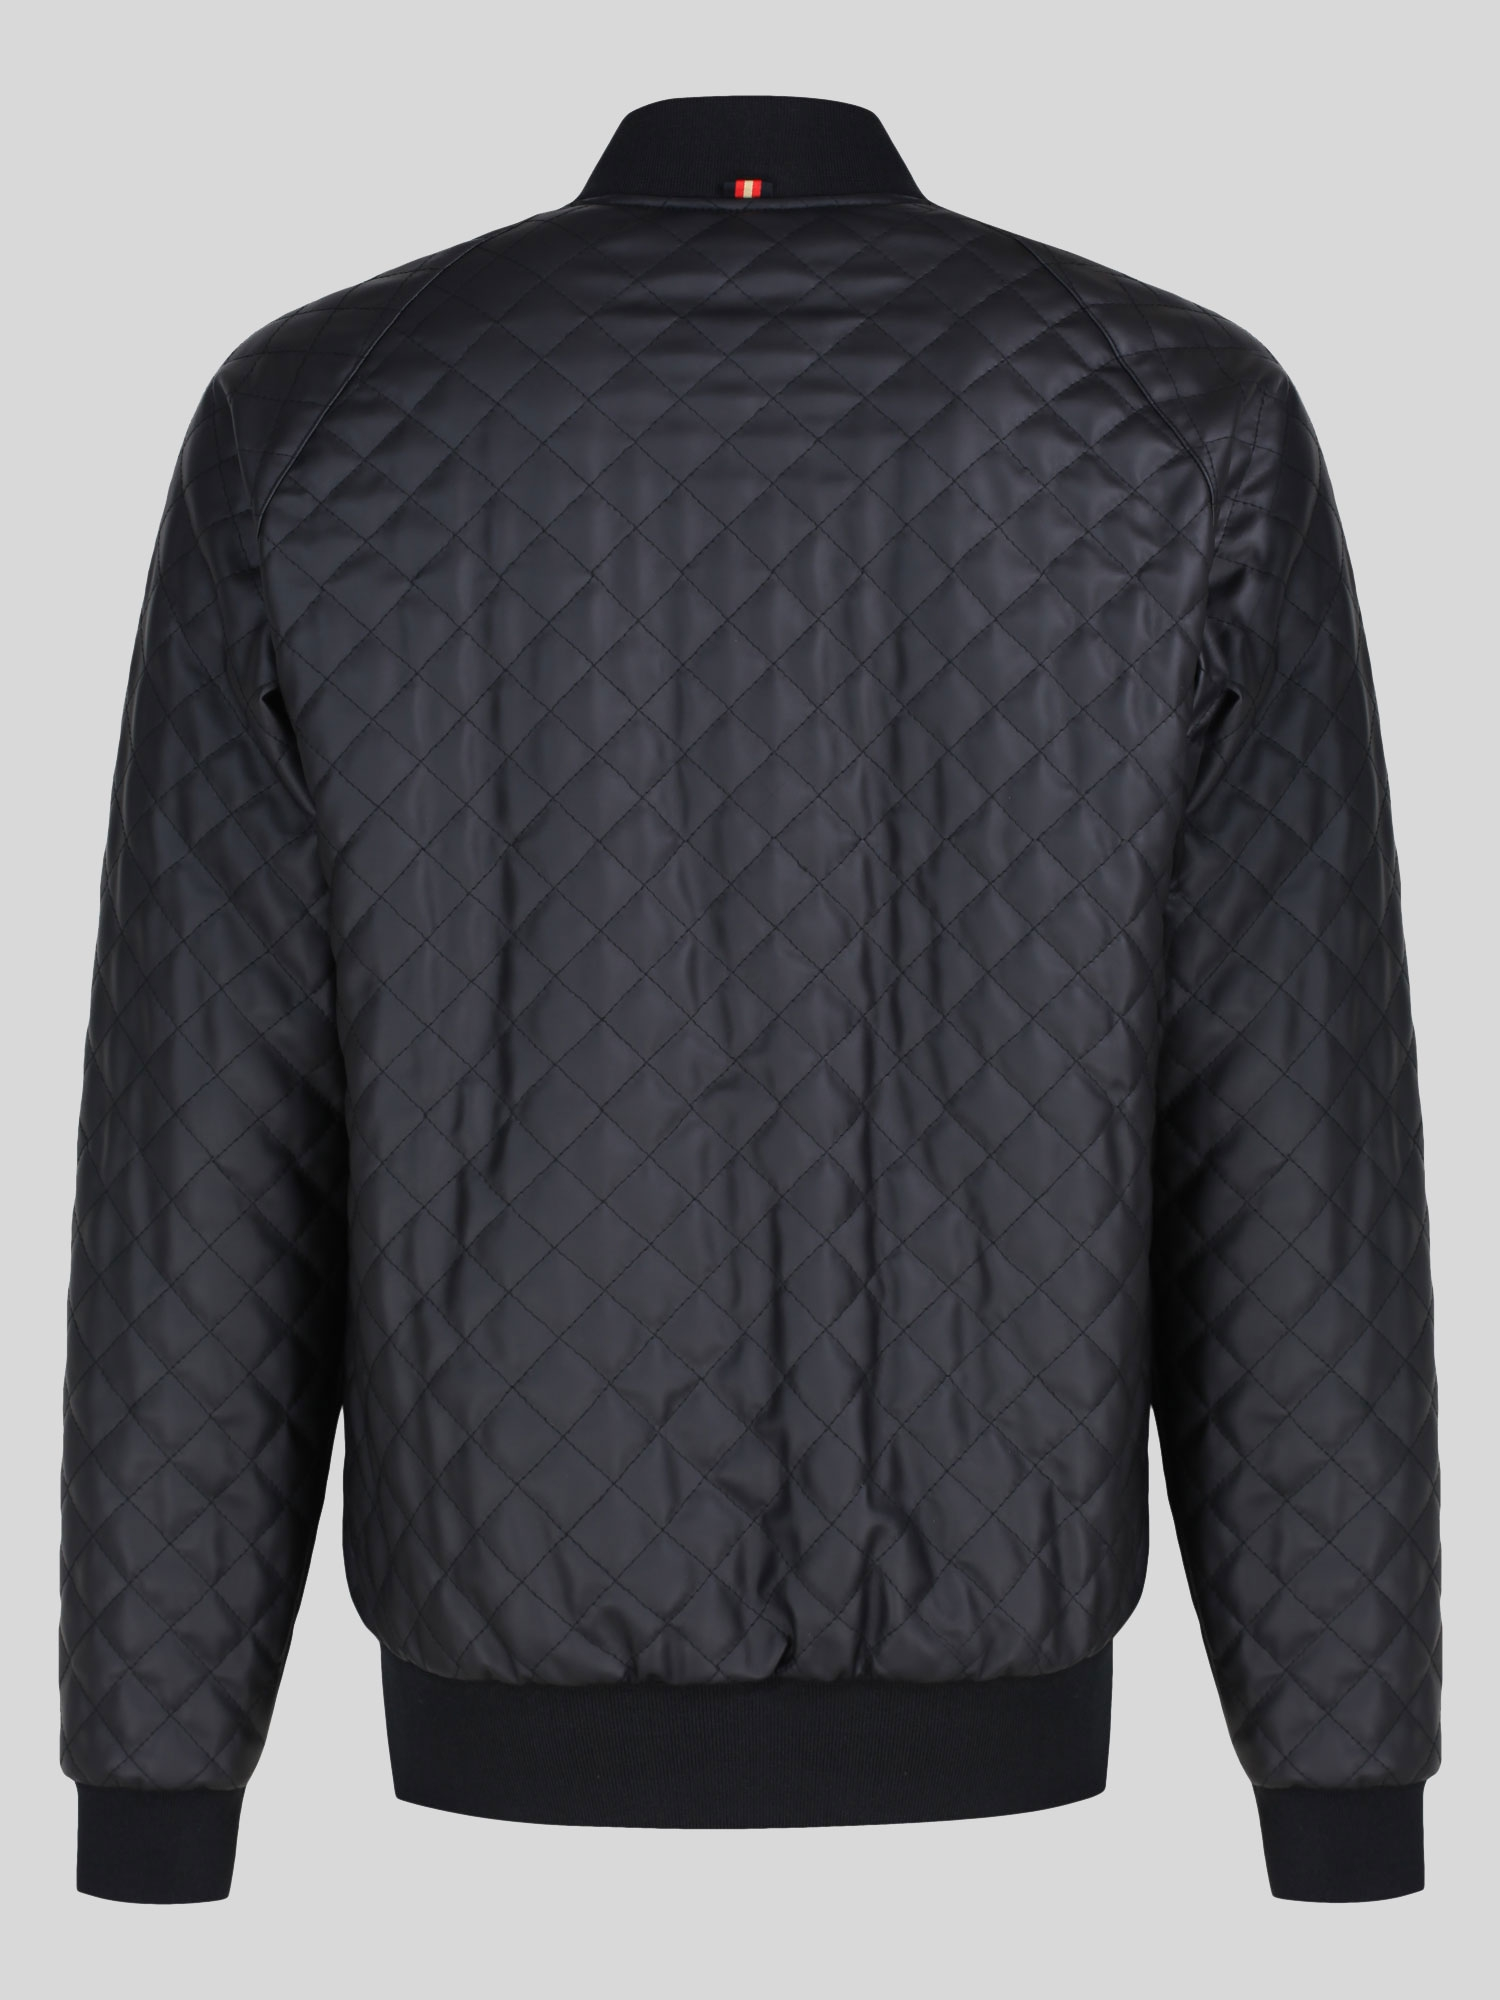 Luke 1977 Mens Thiery Zip Through Quilted Bomber Jacket Coat ... 35d40dbd0